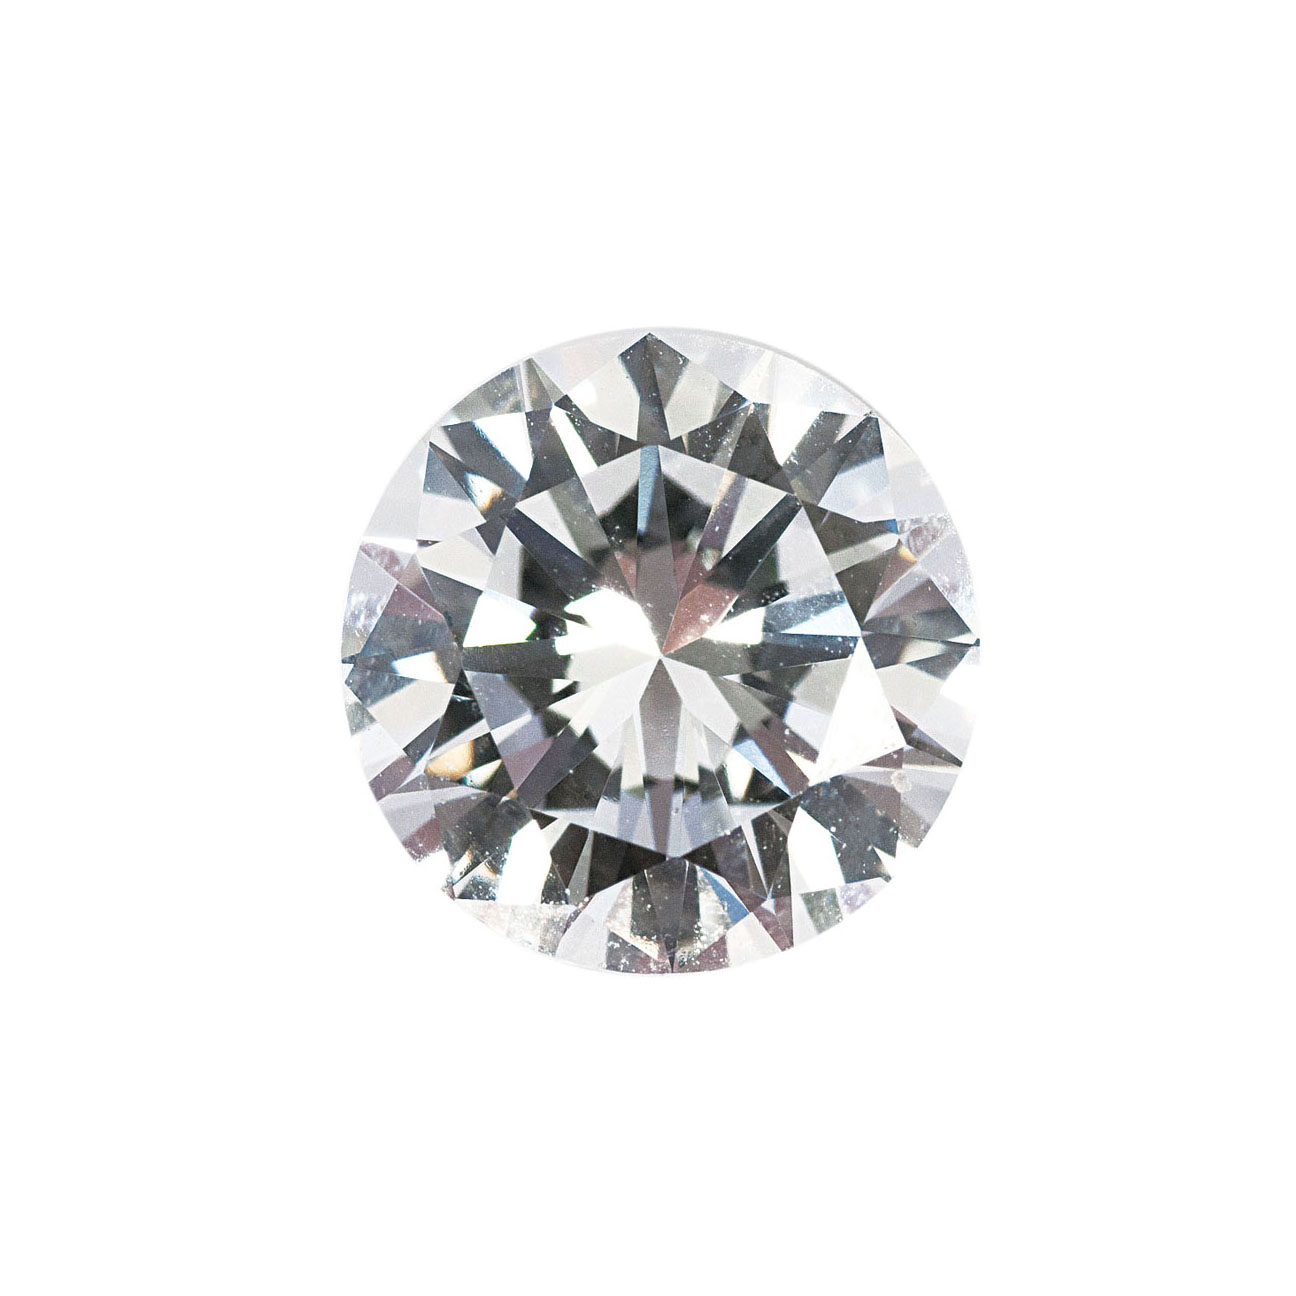 One loose diamond